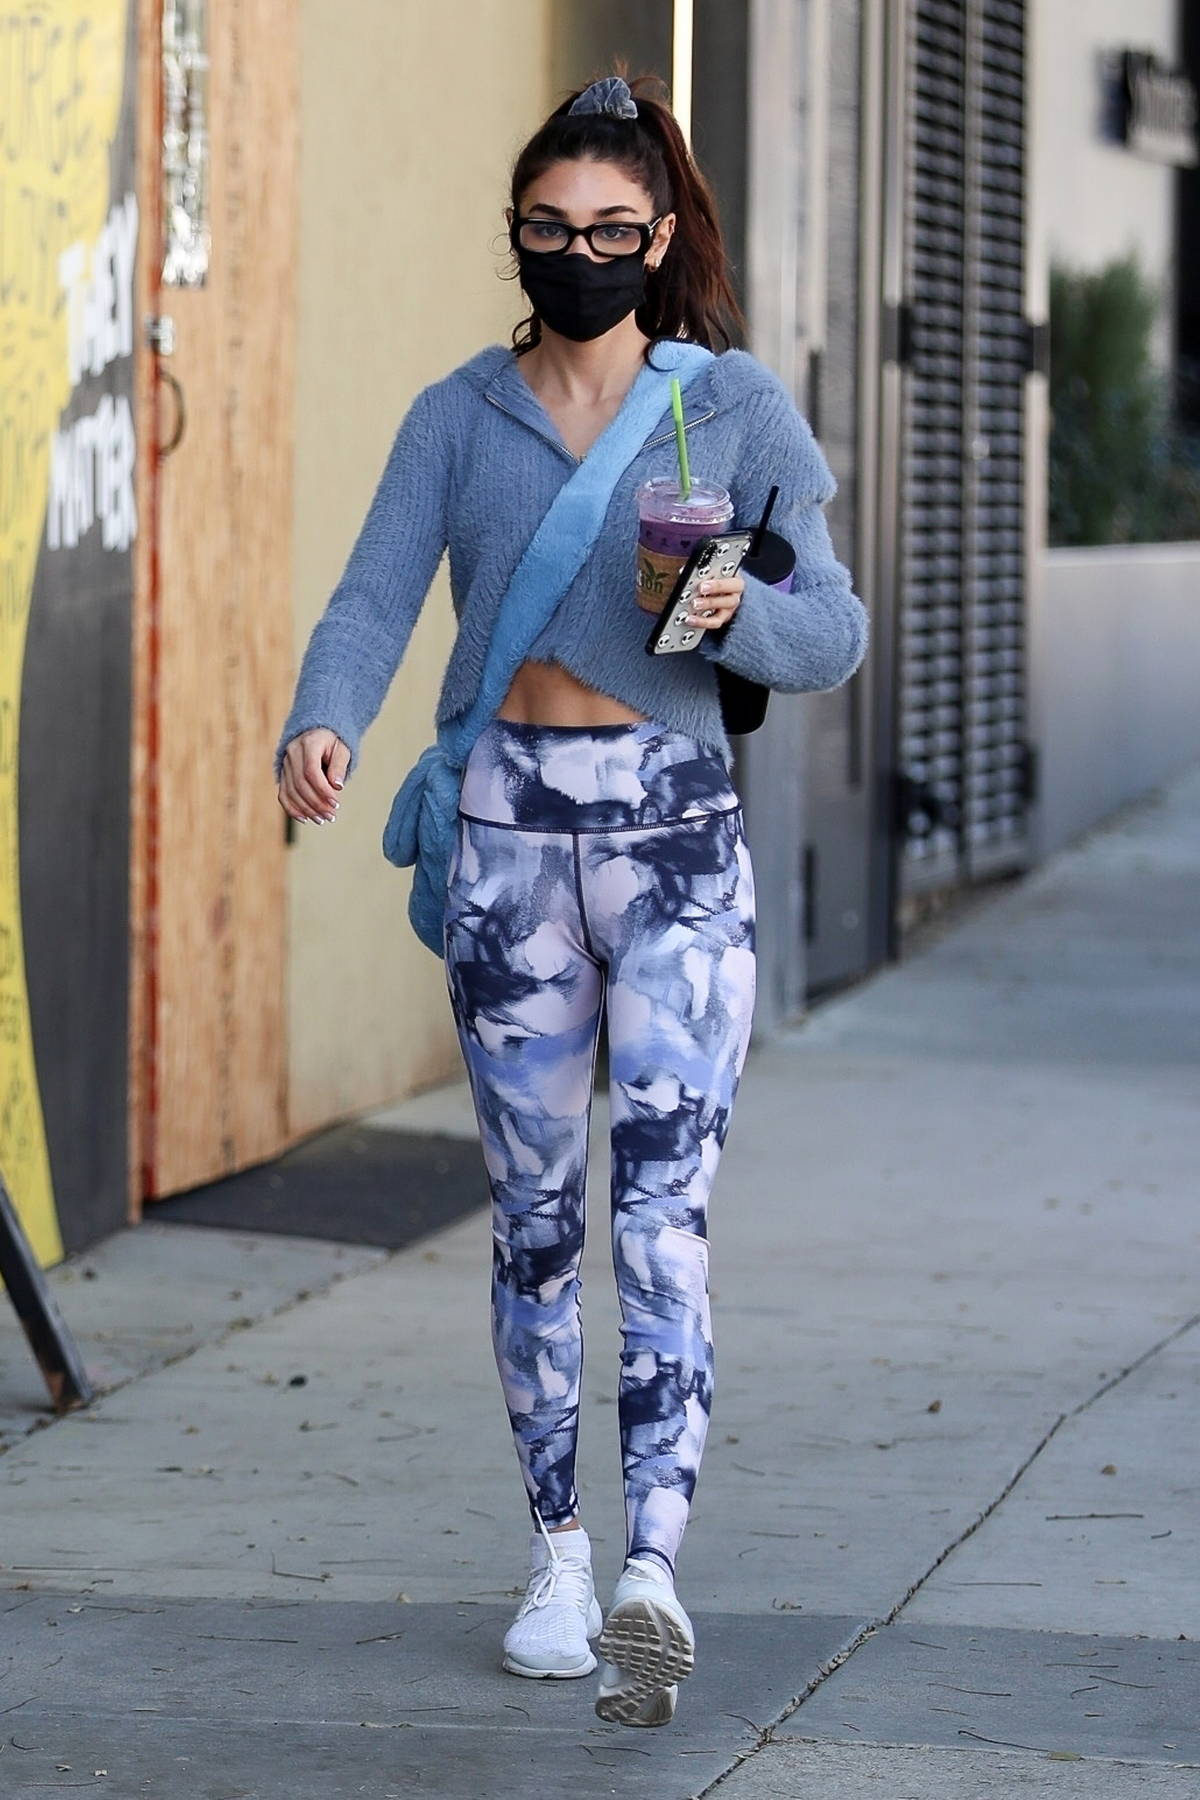 Chantel Jeffries flashes her toned abs as she leaves the Dogpound Gym in West Hollywood, California